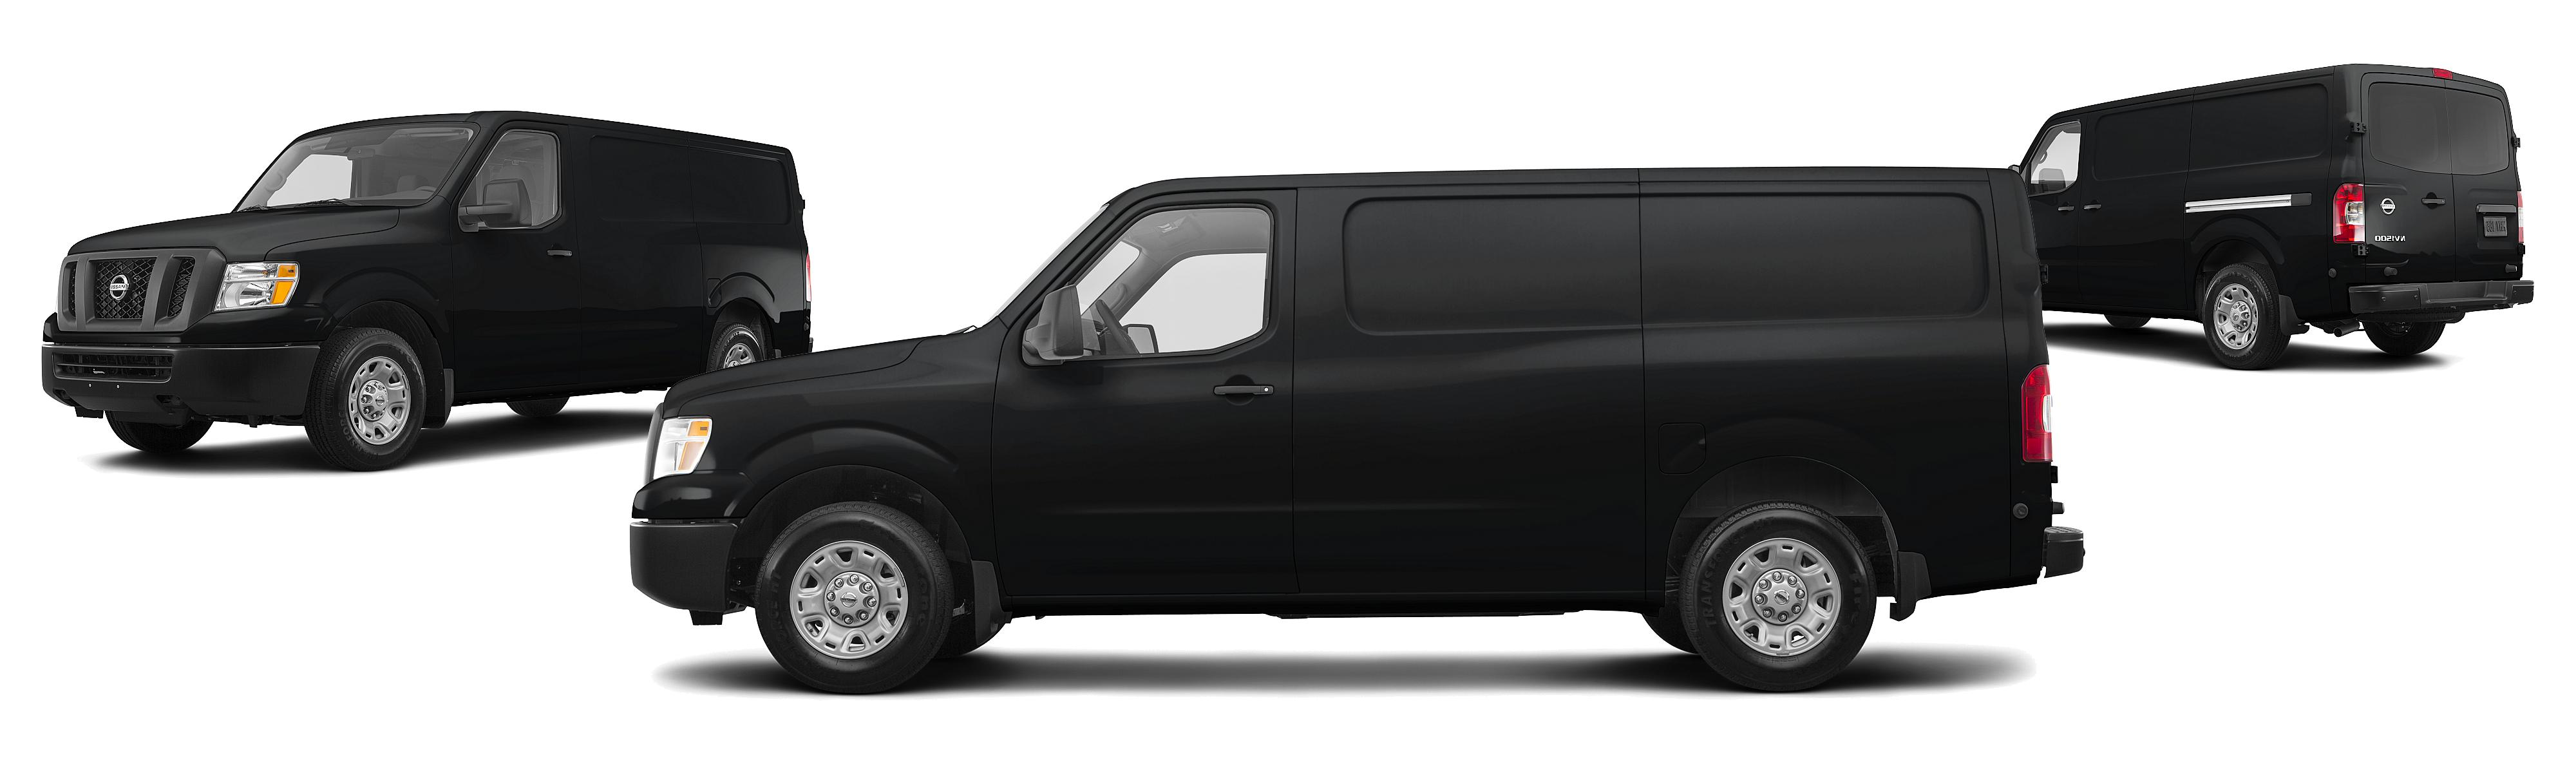 black premium size loading fit iboard nv side steps is full itm van image ib nissan